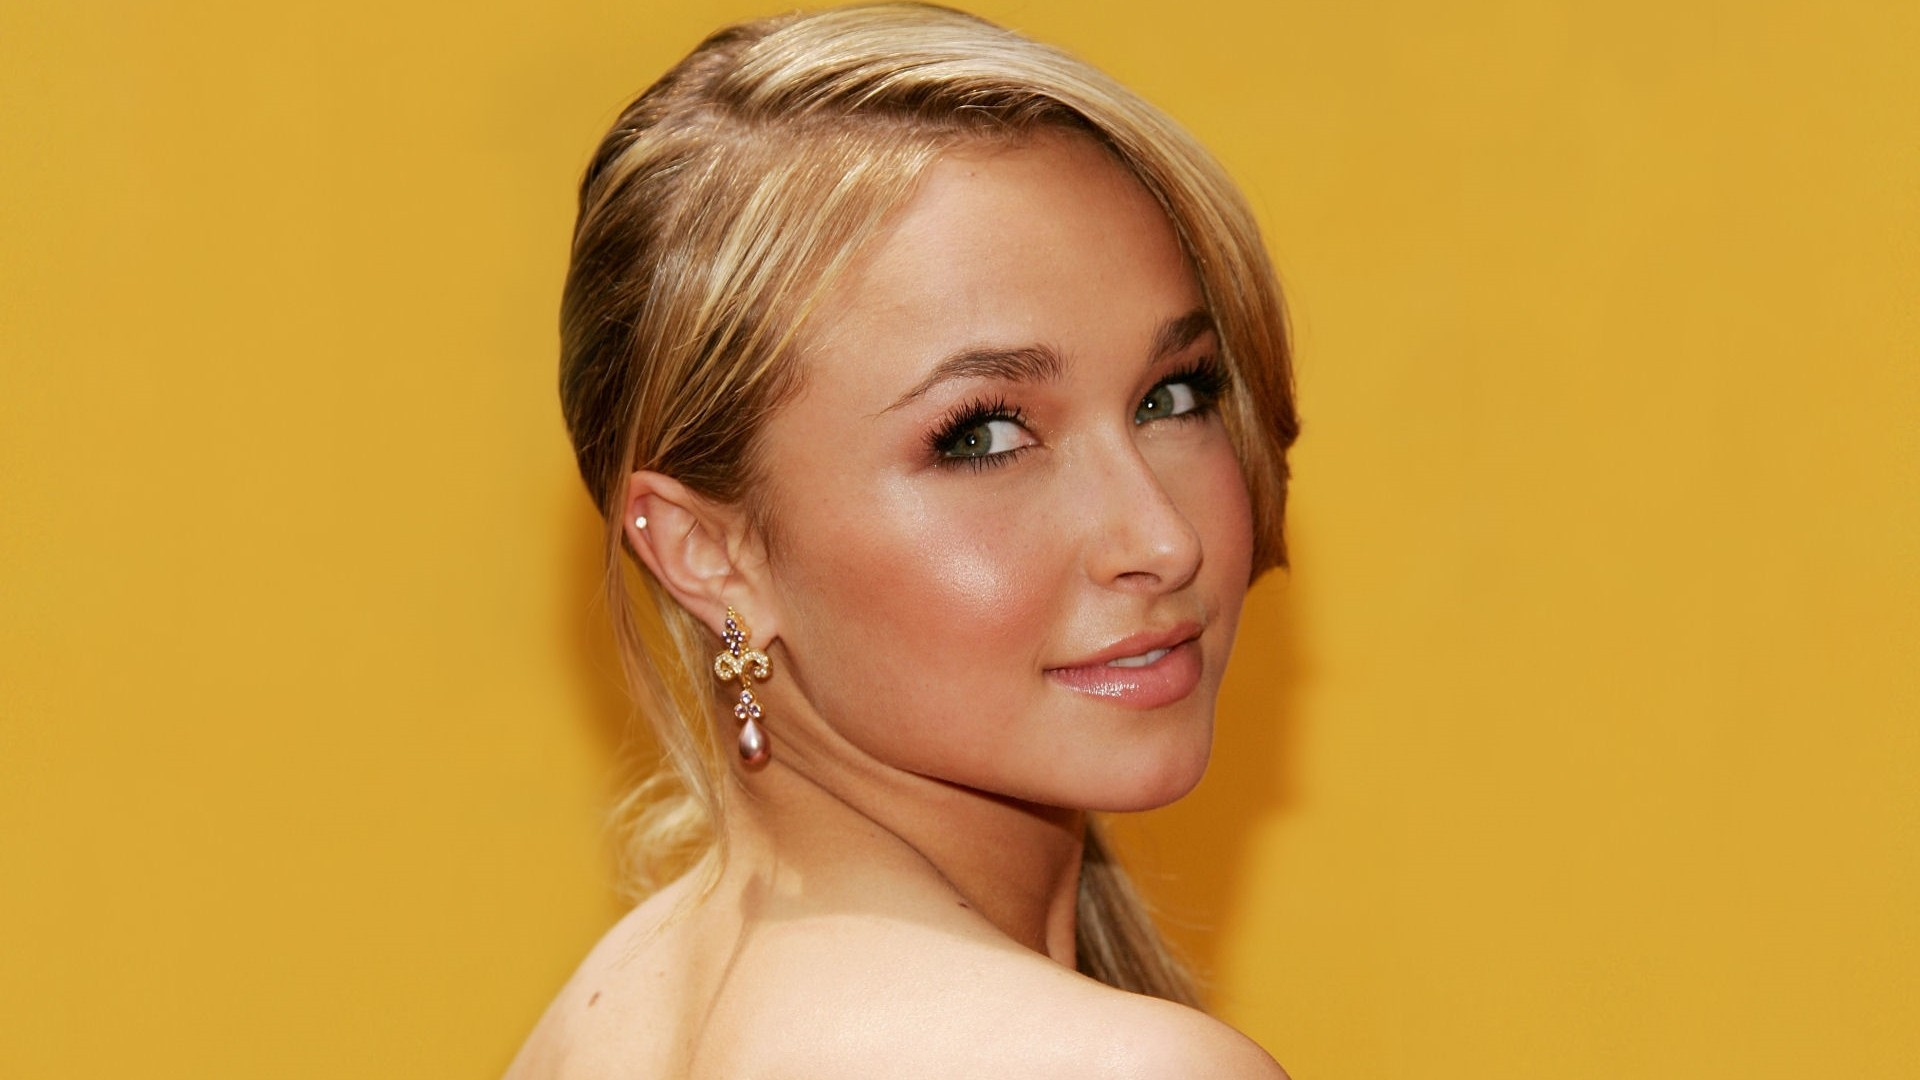 woman Actress hayden panettiere HD Wallpaper